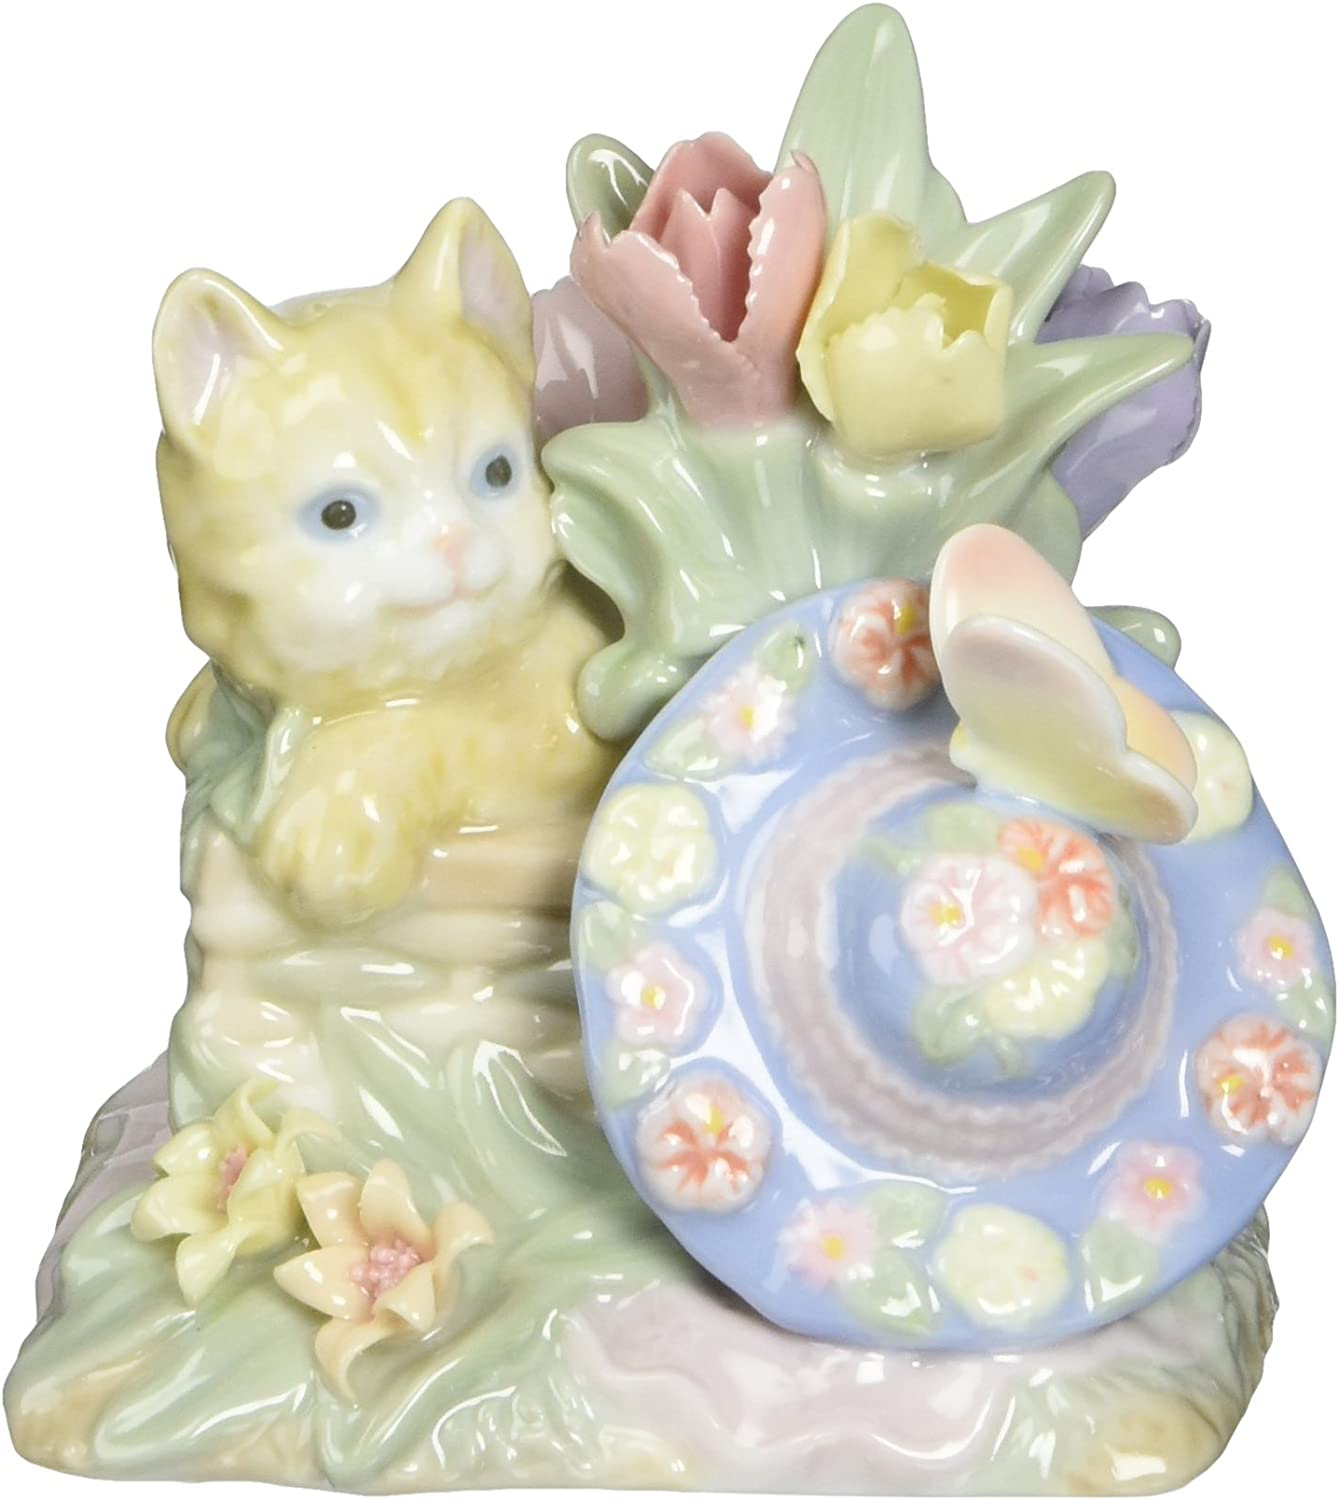 Cosmos 6-6 Fine Porcelain Cat in Floral Basket with Butterfly Figurine,  6-6/6-Inch